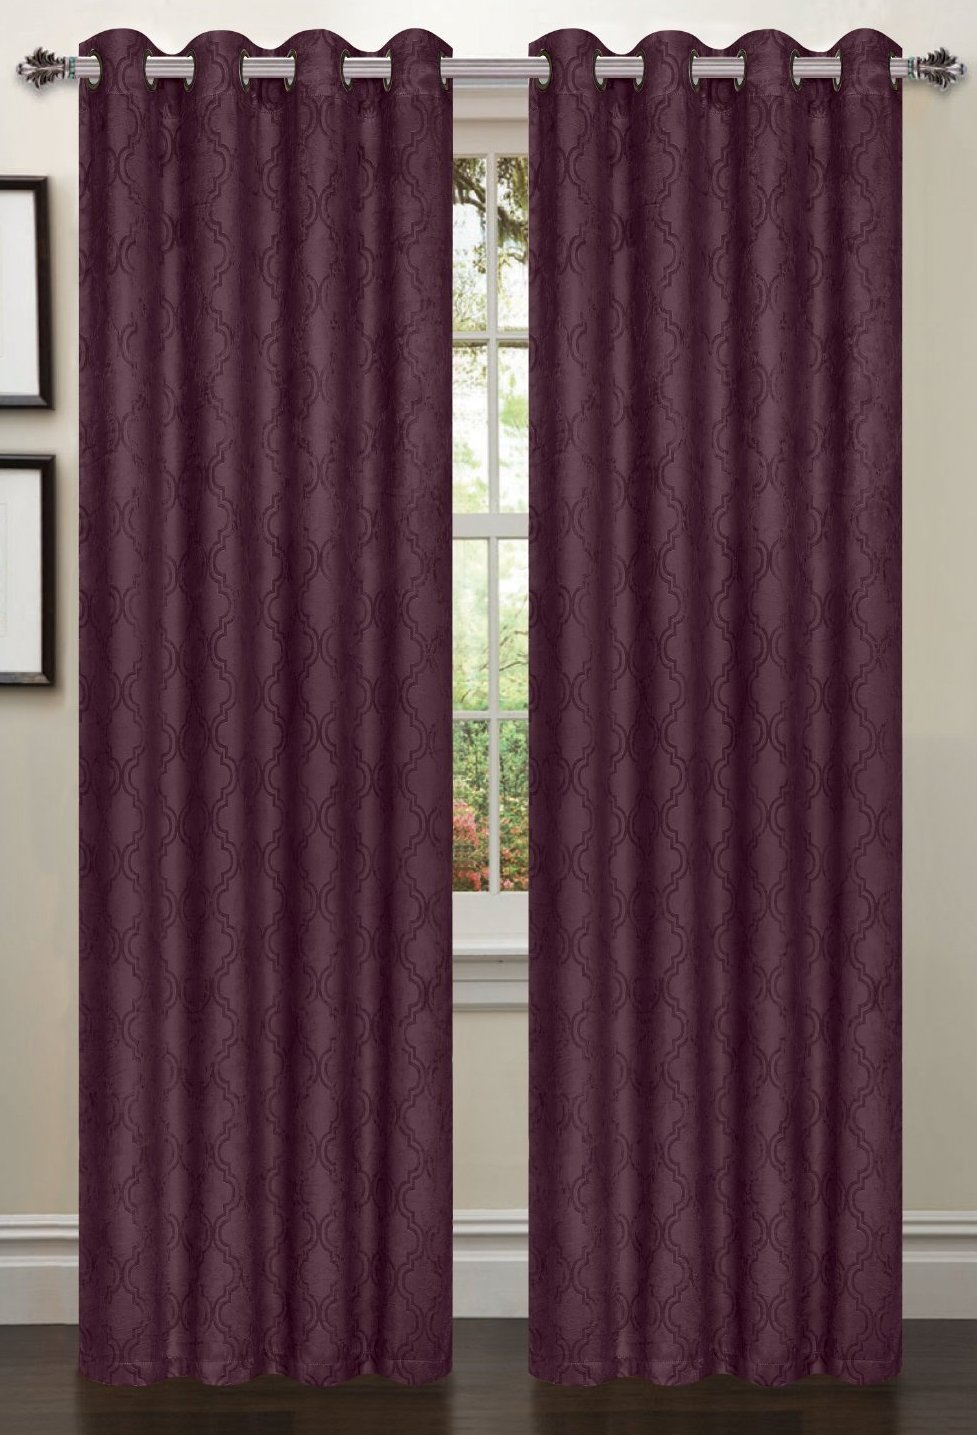 Sheer Curtains Plum Sheer Curtains Inspiring Pictures Of Curtains Designs And Decorating Ideas